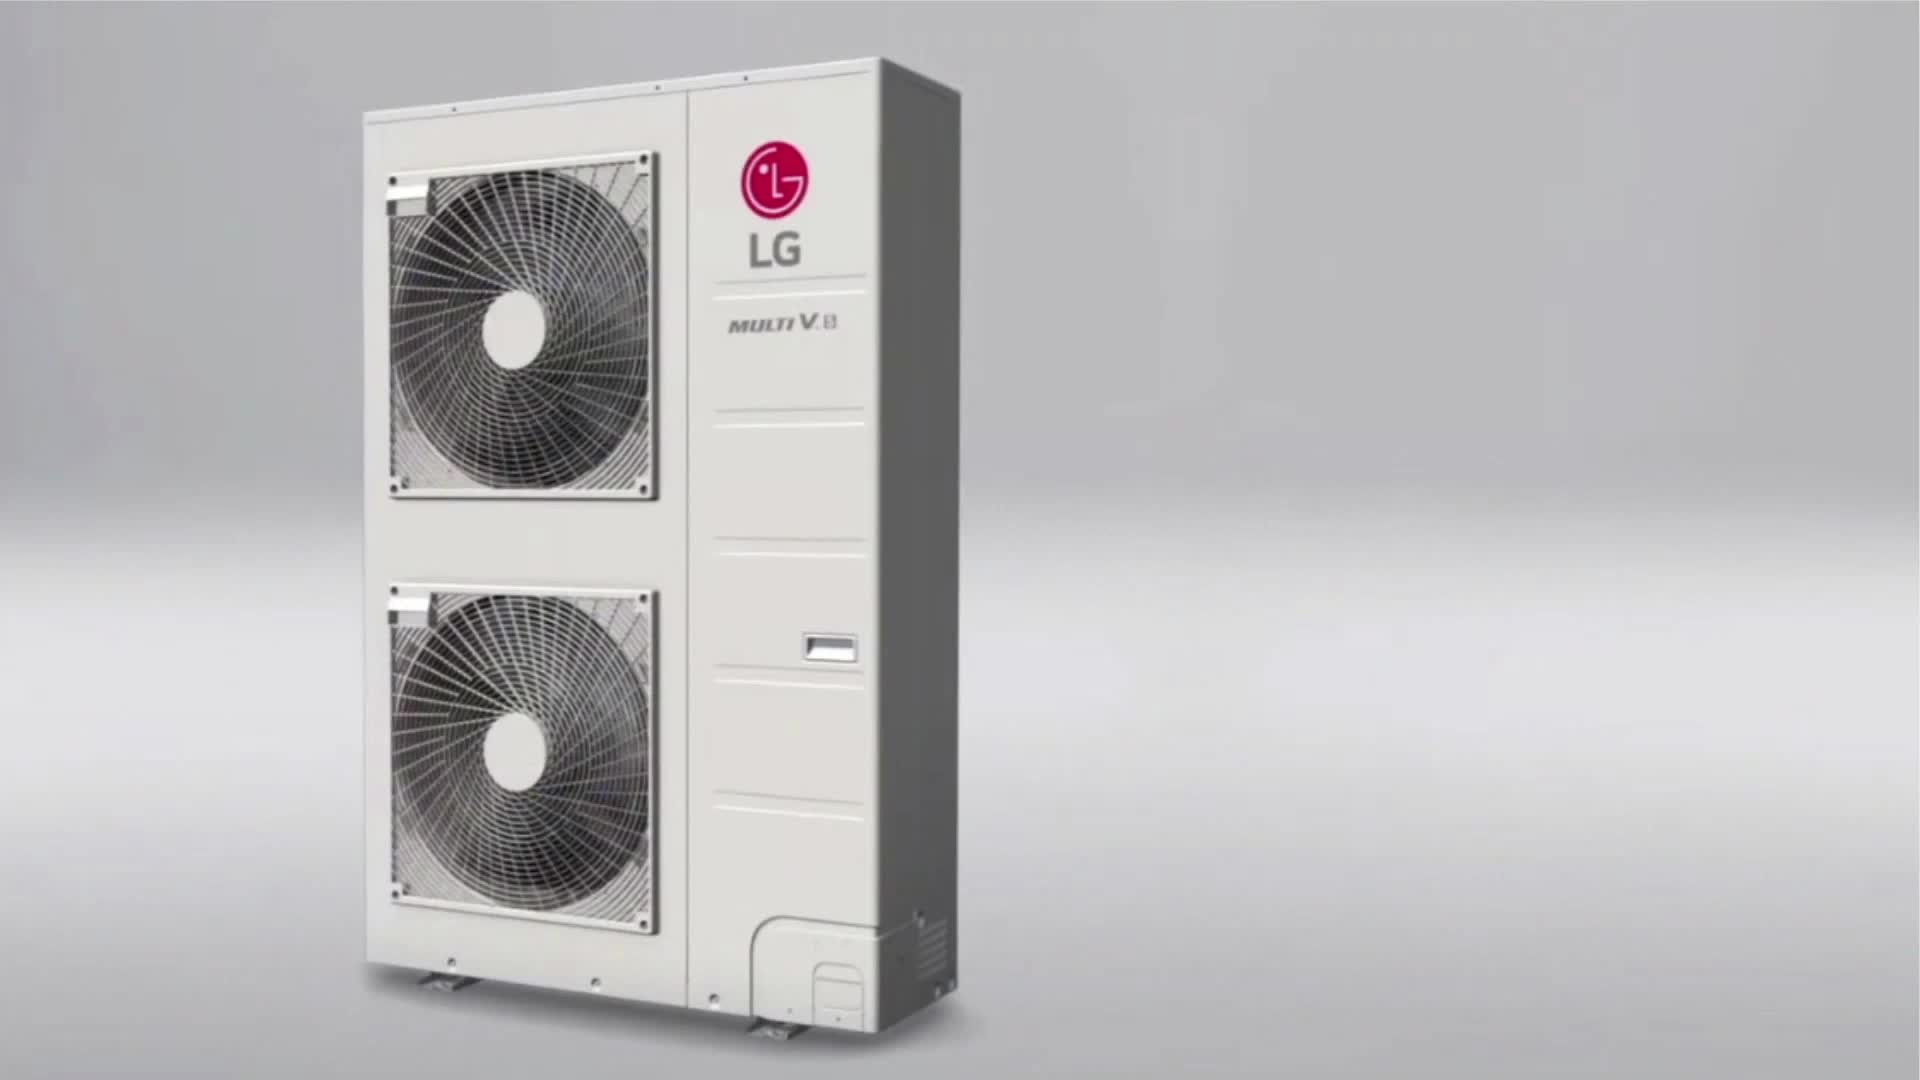 LG Multi VS ARU0163WS4 15.5kw Cooling and Heating VRF